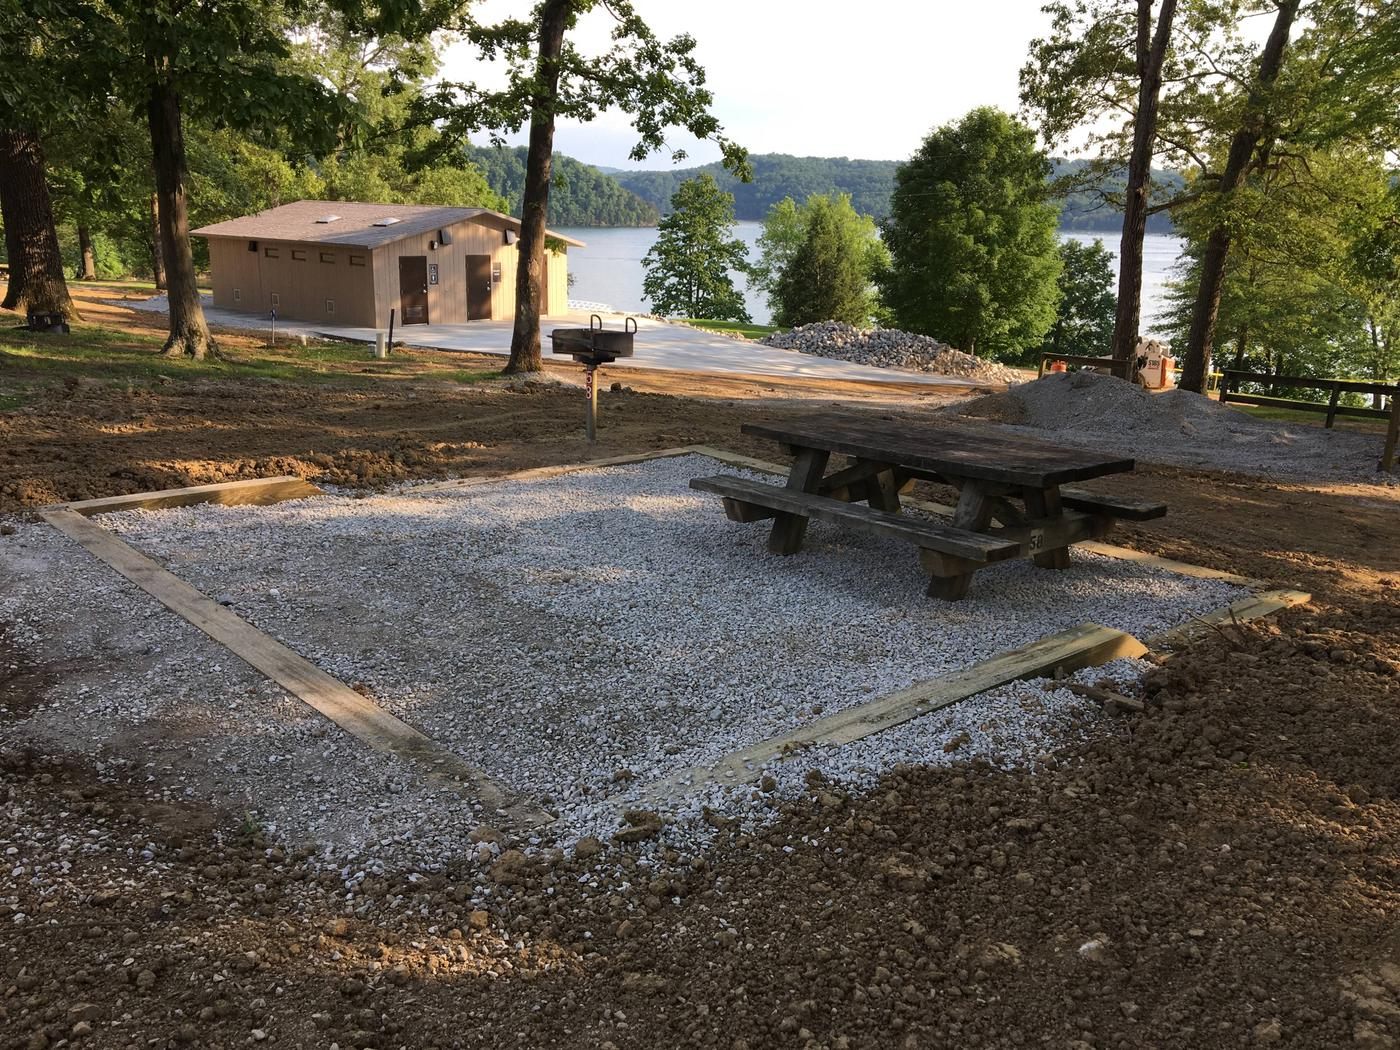 WILLOW GROVE CAMPGROUND SITE #58